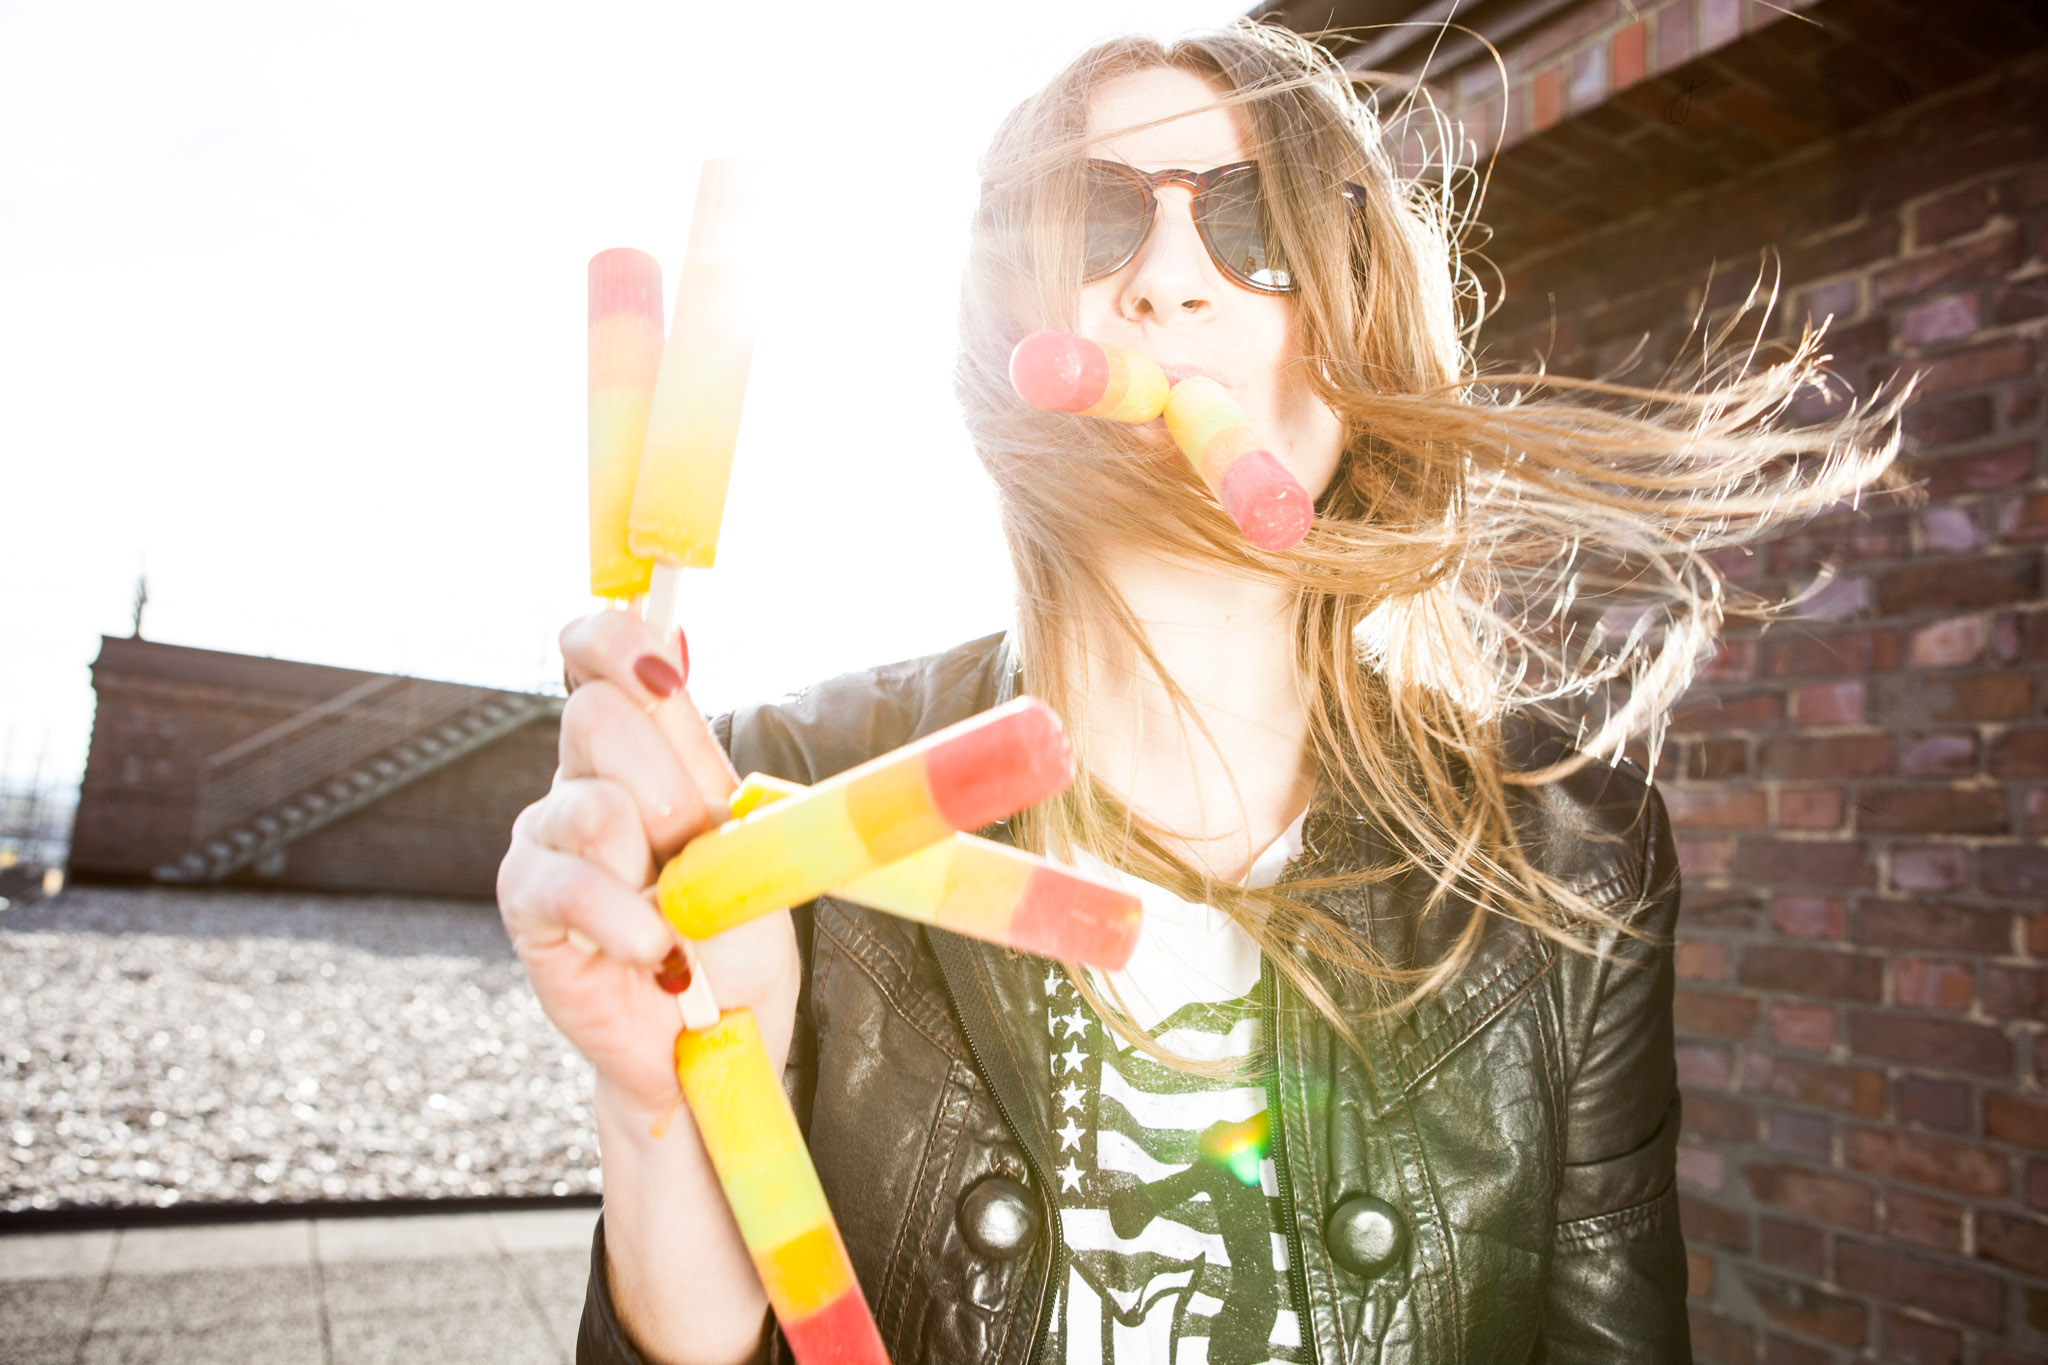 ©TomWoollard_editorial-lifestyle-young-stylish-woman-sunglasses-eating-ice-lolly-sunny-day-wind-hair.jpg